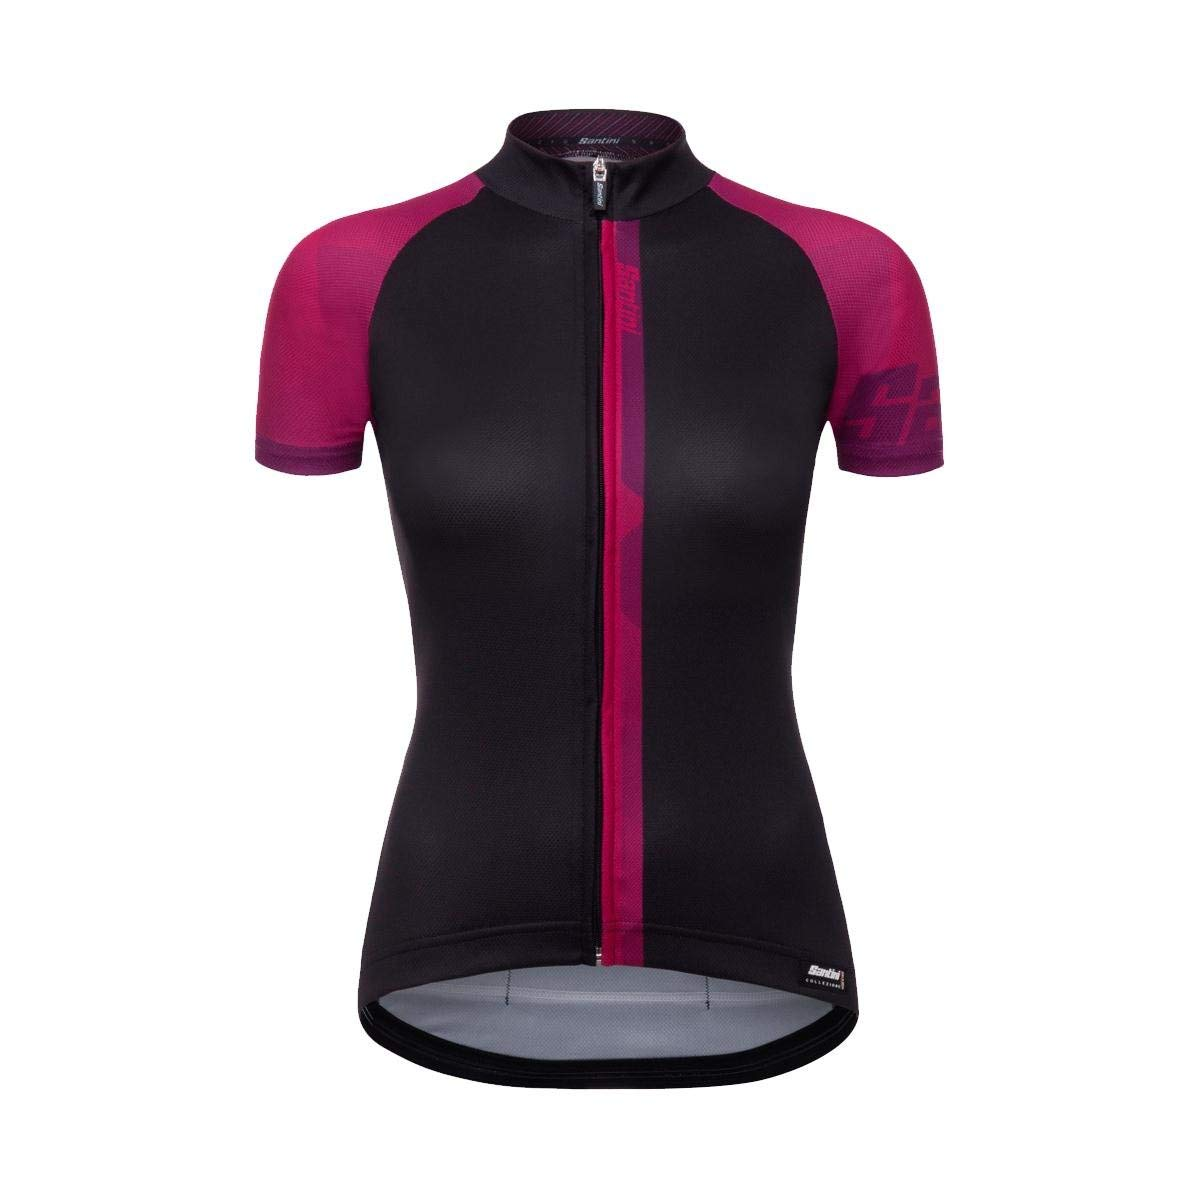 World Jerseys Women/'s Fomaggio Bici La Rose Cycling Jersey